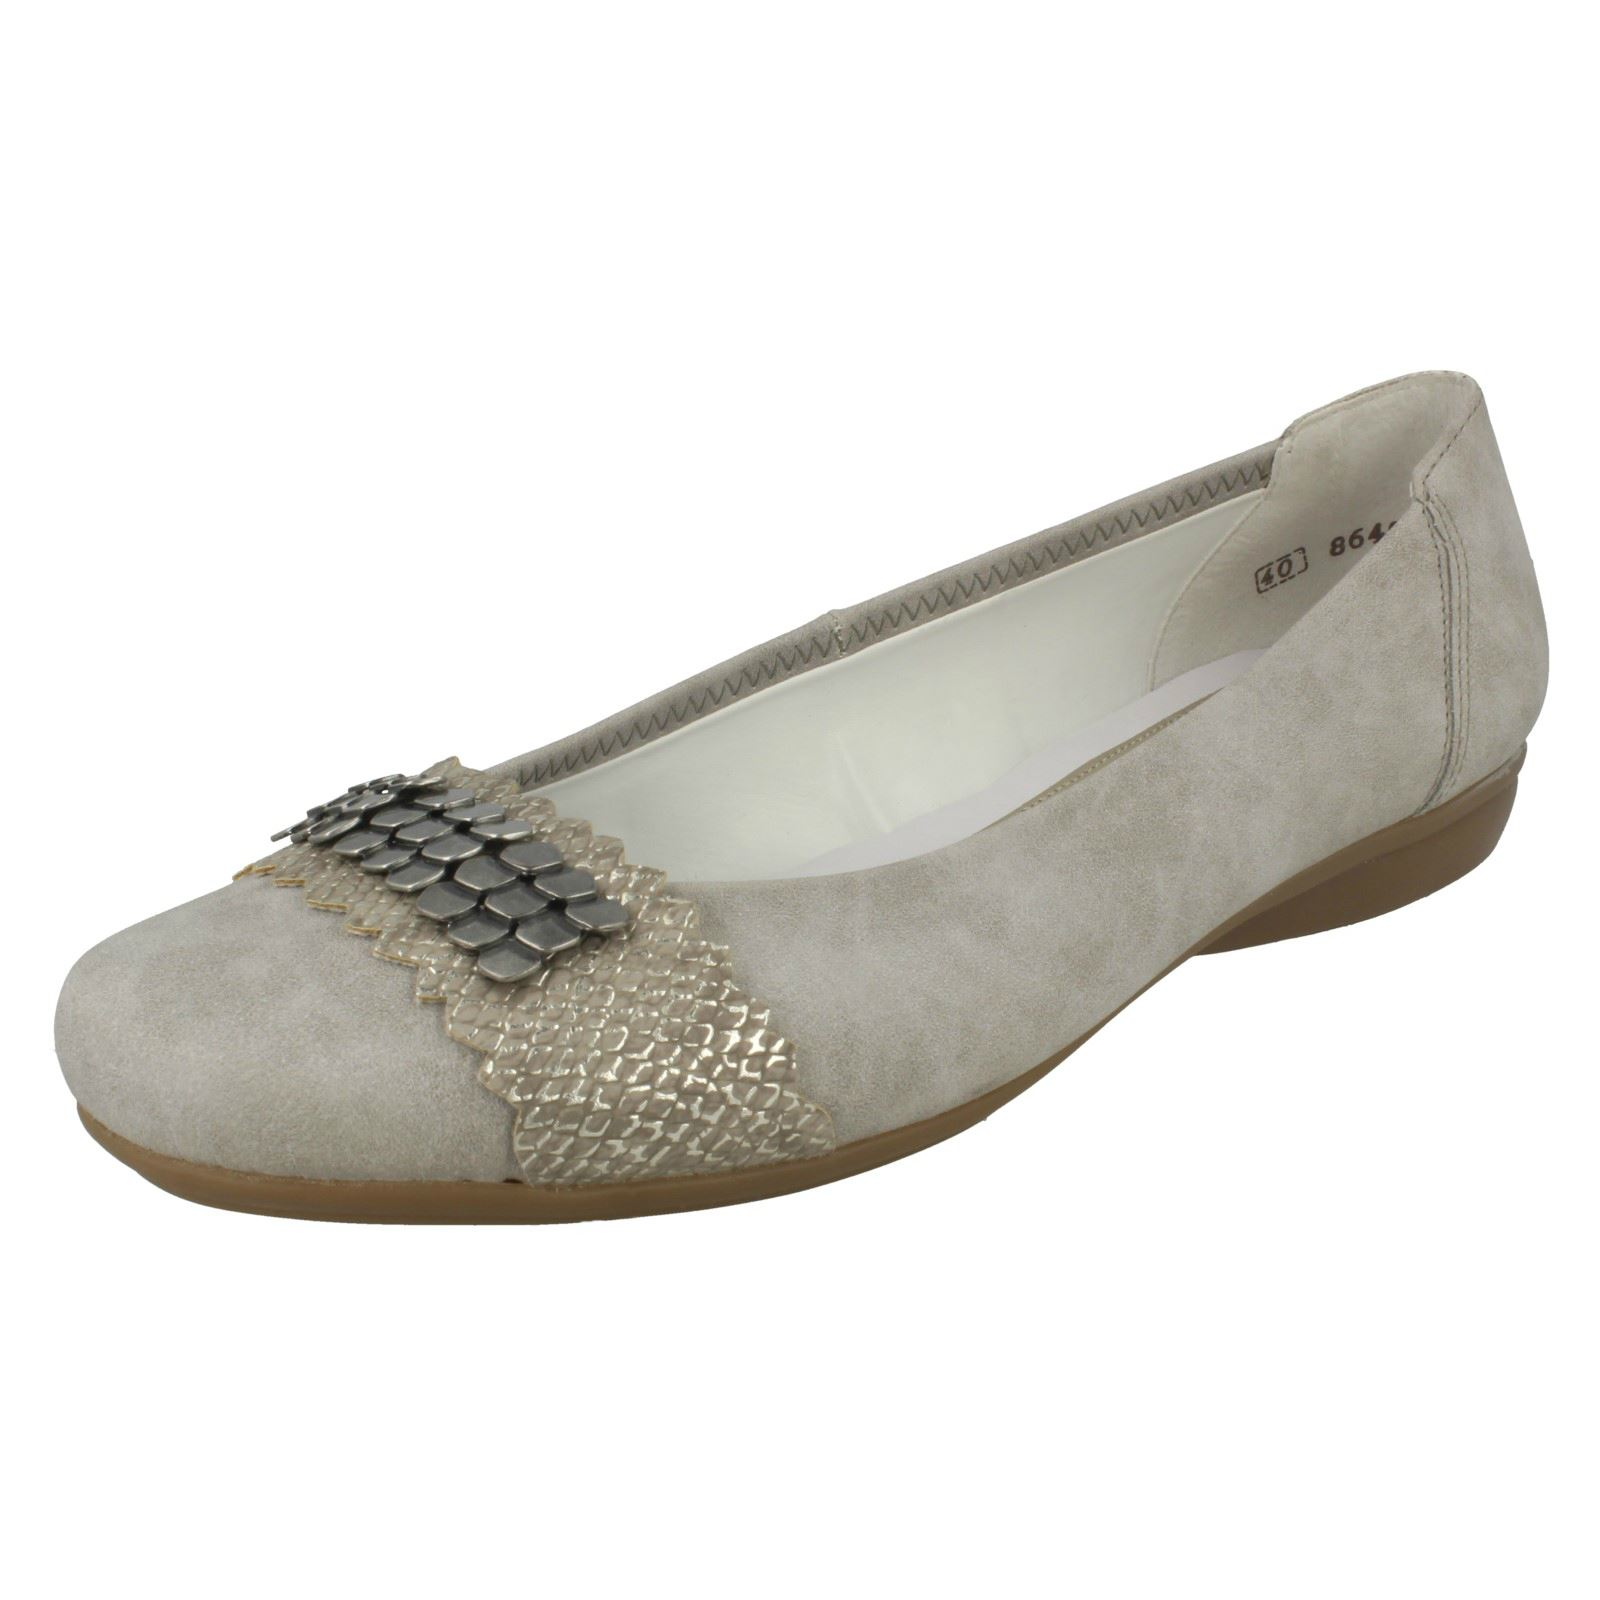 L8360 Toe piatto grigio Ladies sintetiche Rieker scarpe On Rounded casual Slip xPqzfqE1w